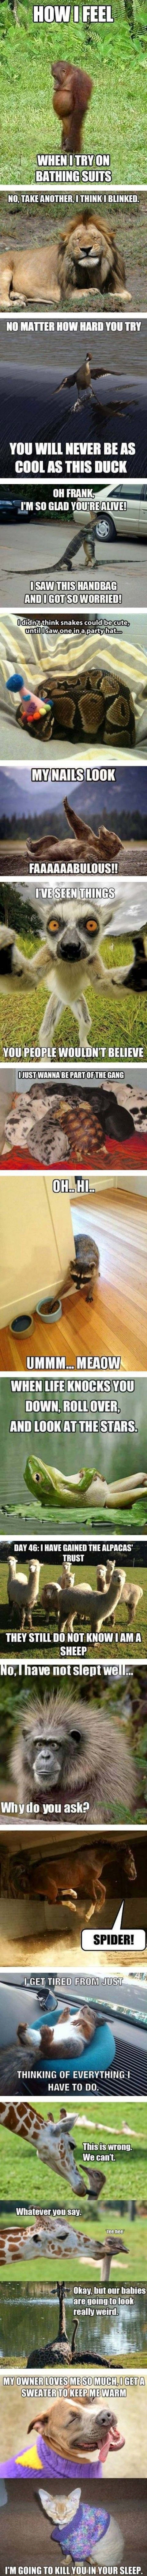 funny pictures with captions 222 (53 pict) Funny pictures #compartirvideos search Pinteres...